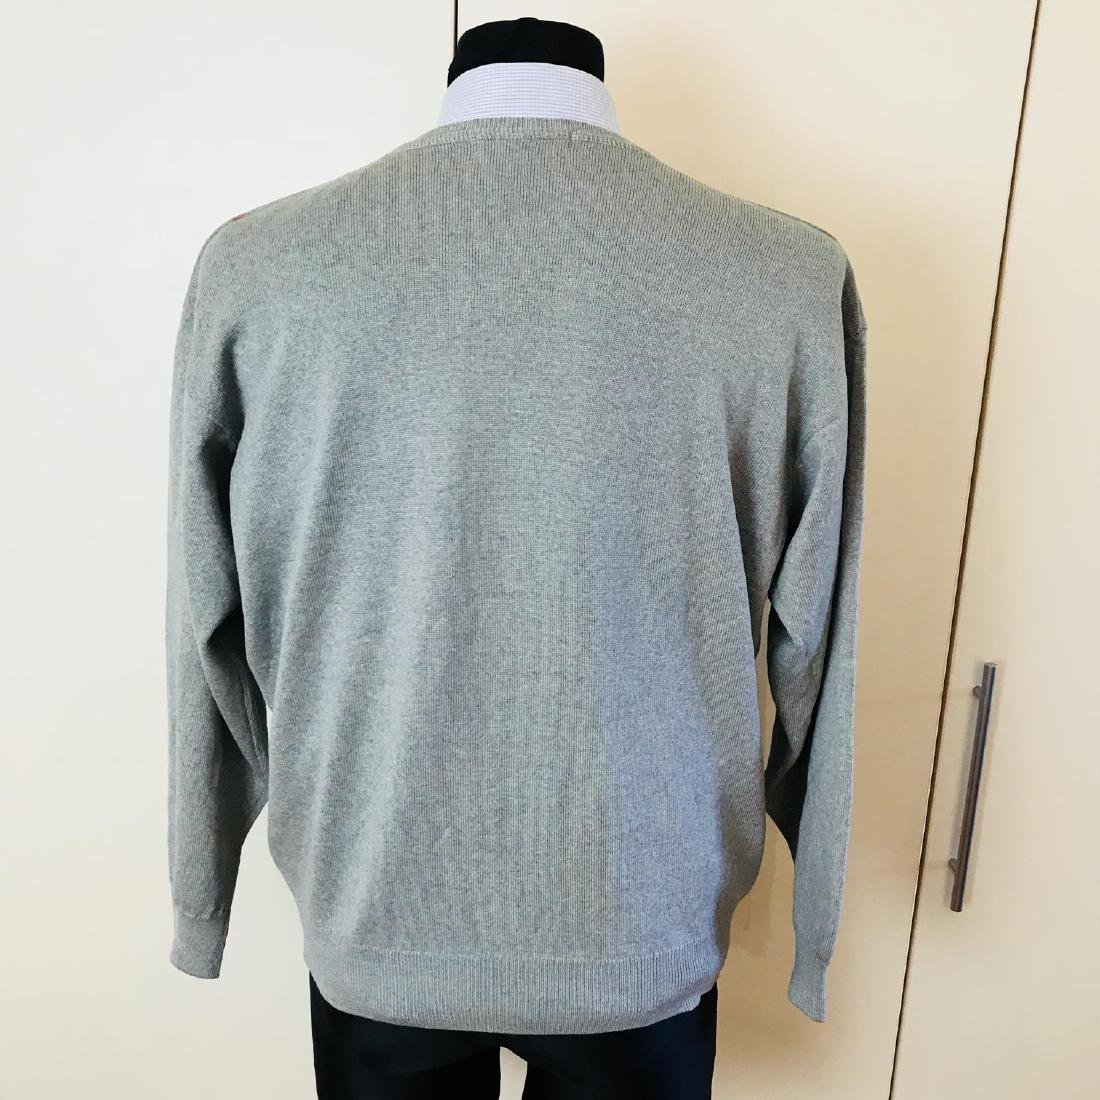 Vintage Men's Pierre Cardin Wool Sweater Size L - 5